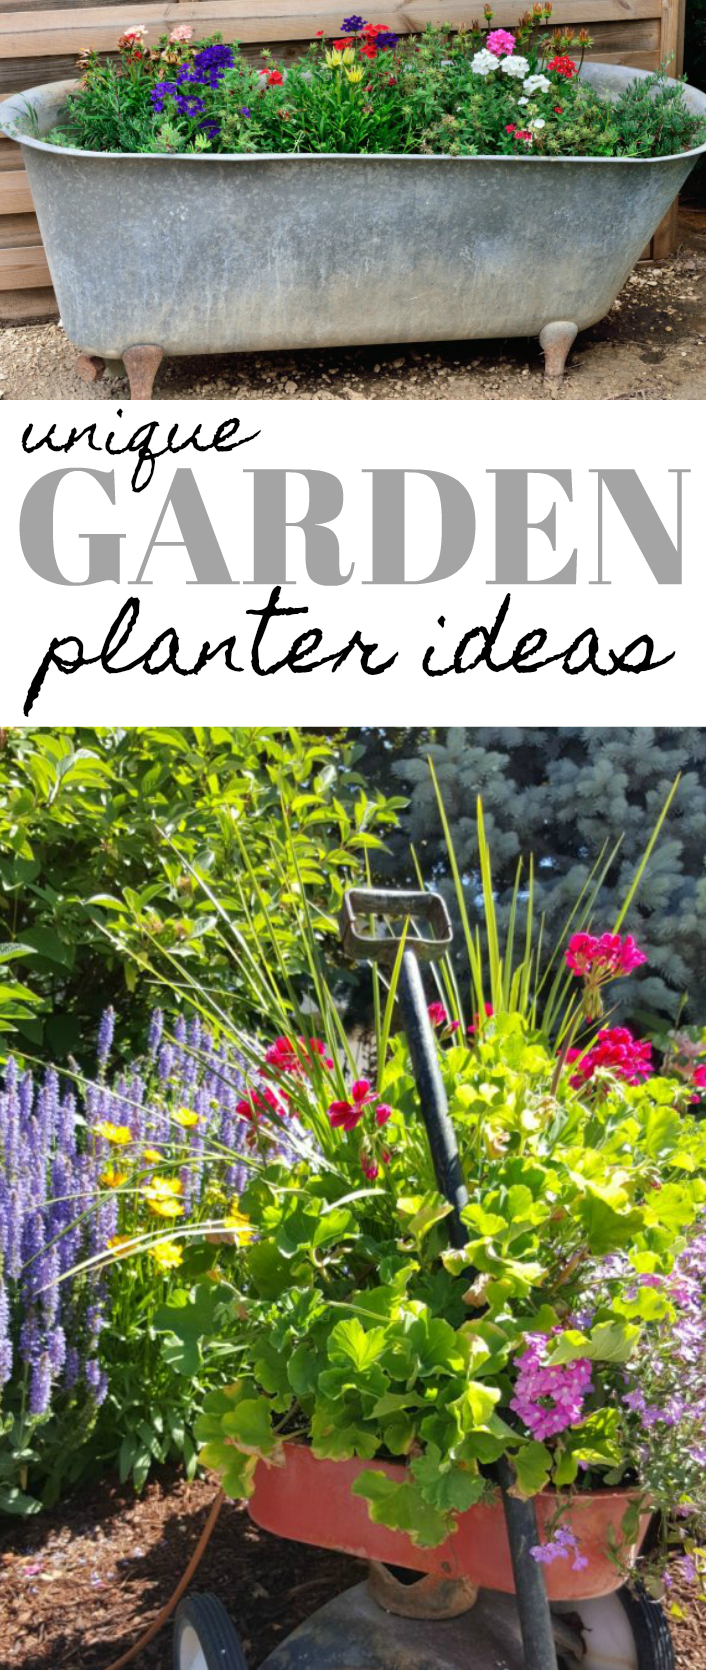 unique garden planter ideas and ways to repurpose items in the garden